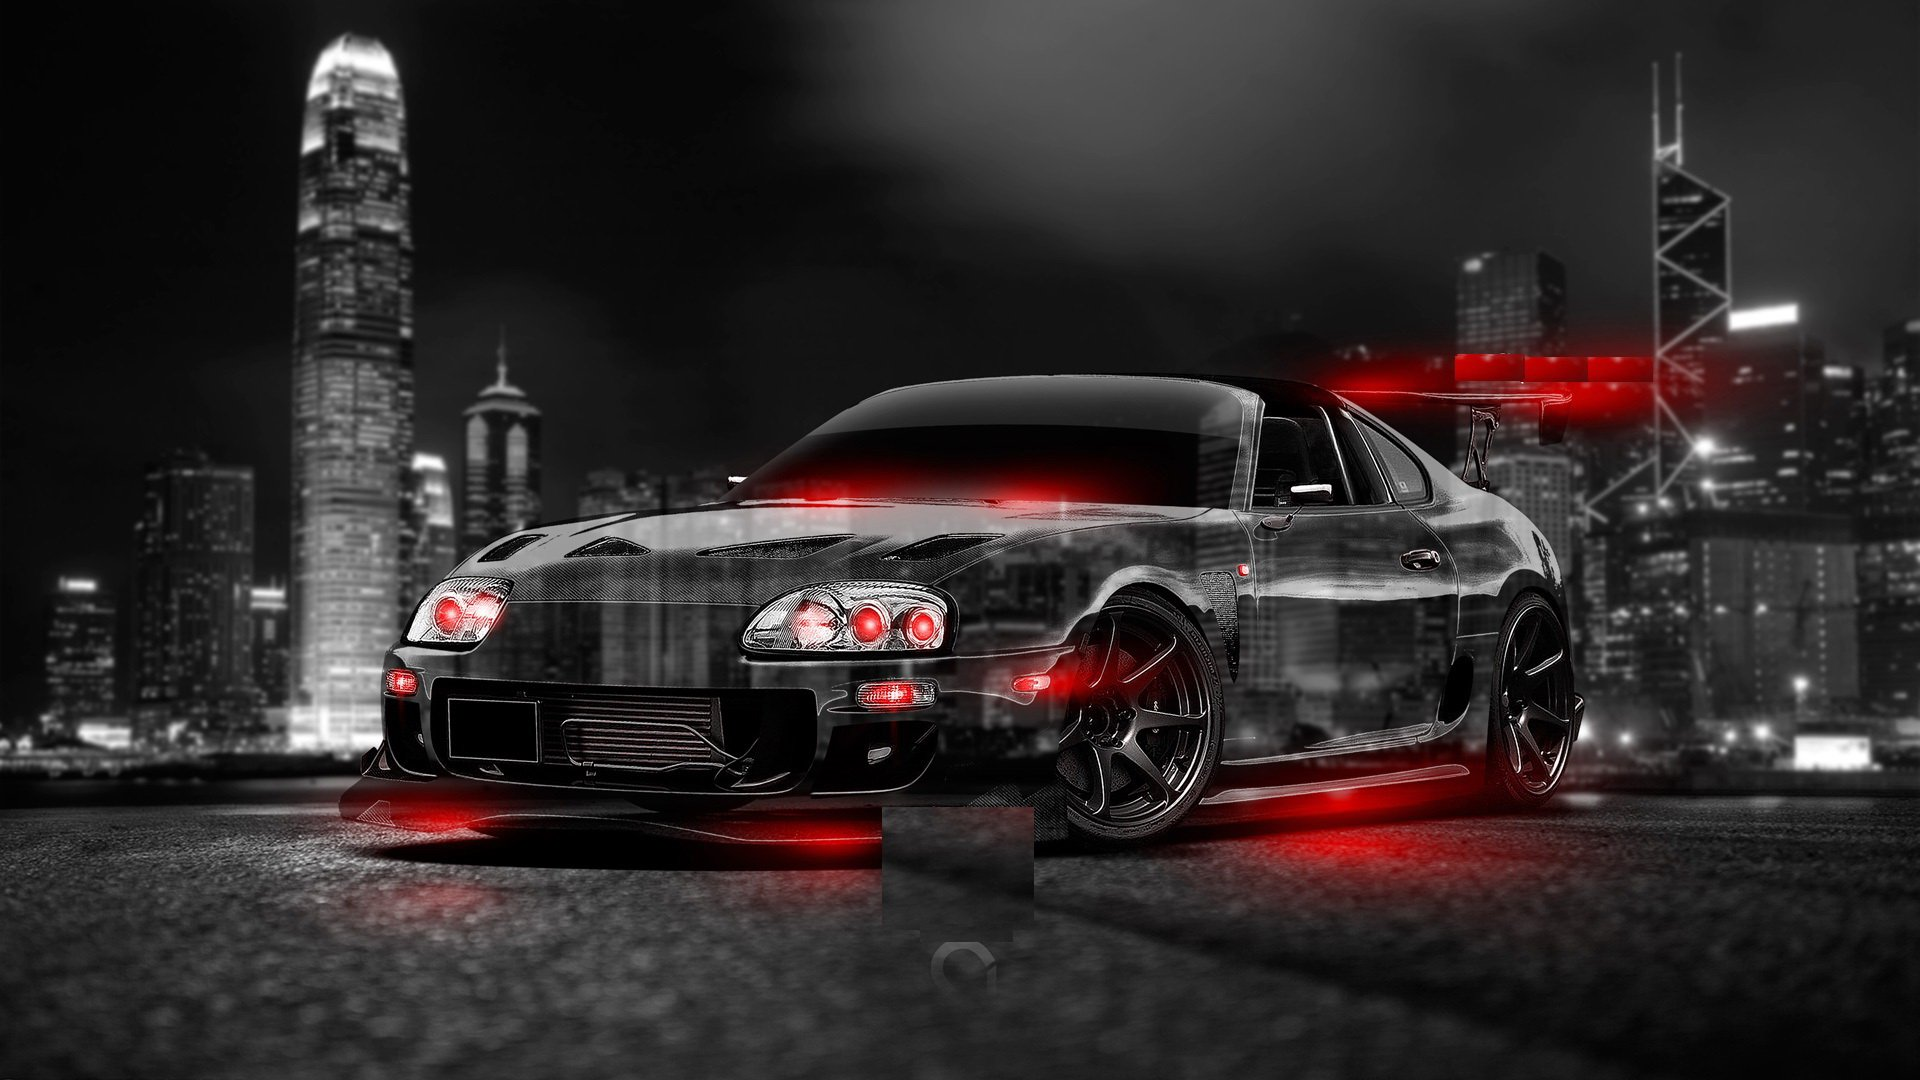 73 Toyota Supra Wallpaper On Wallpapersafari